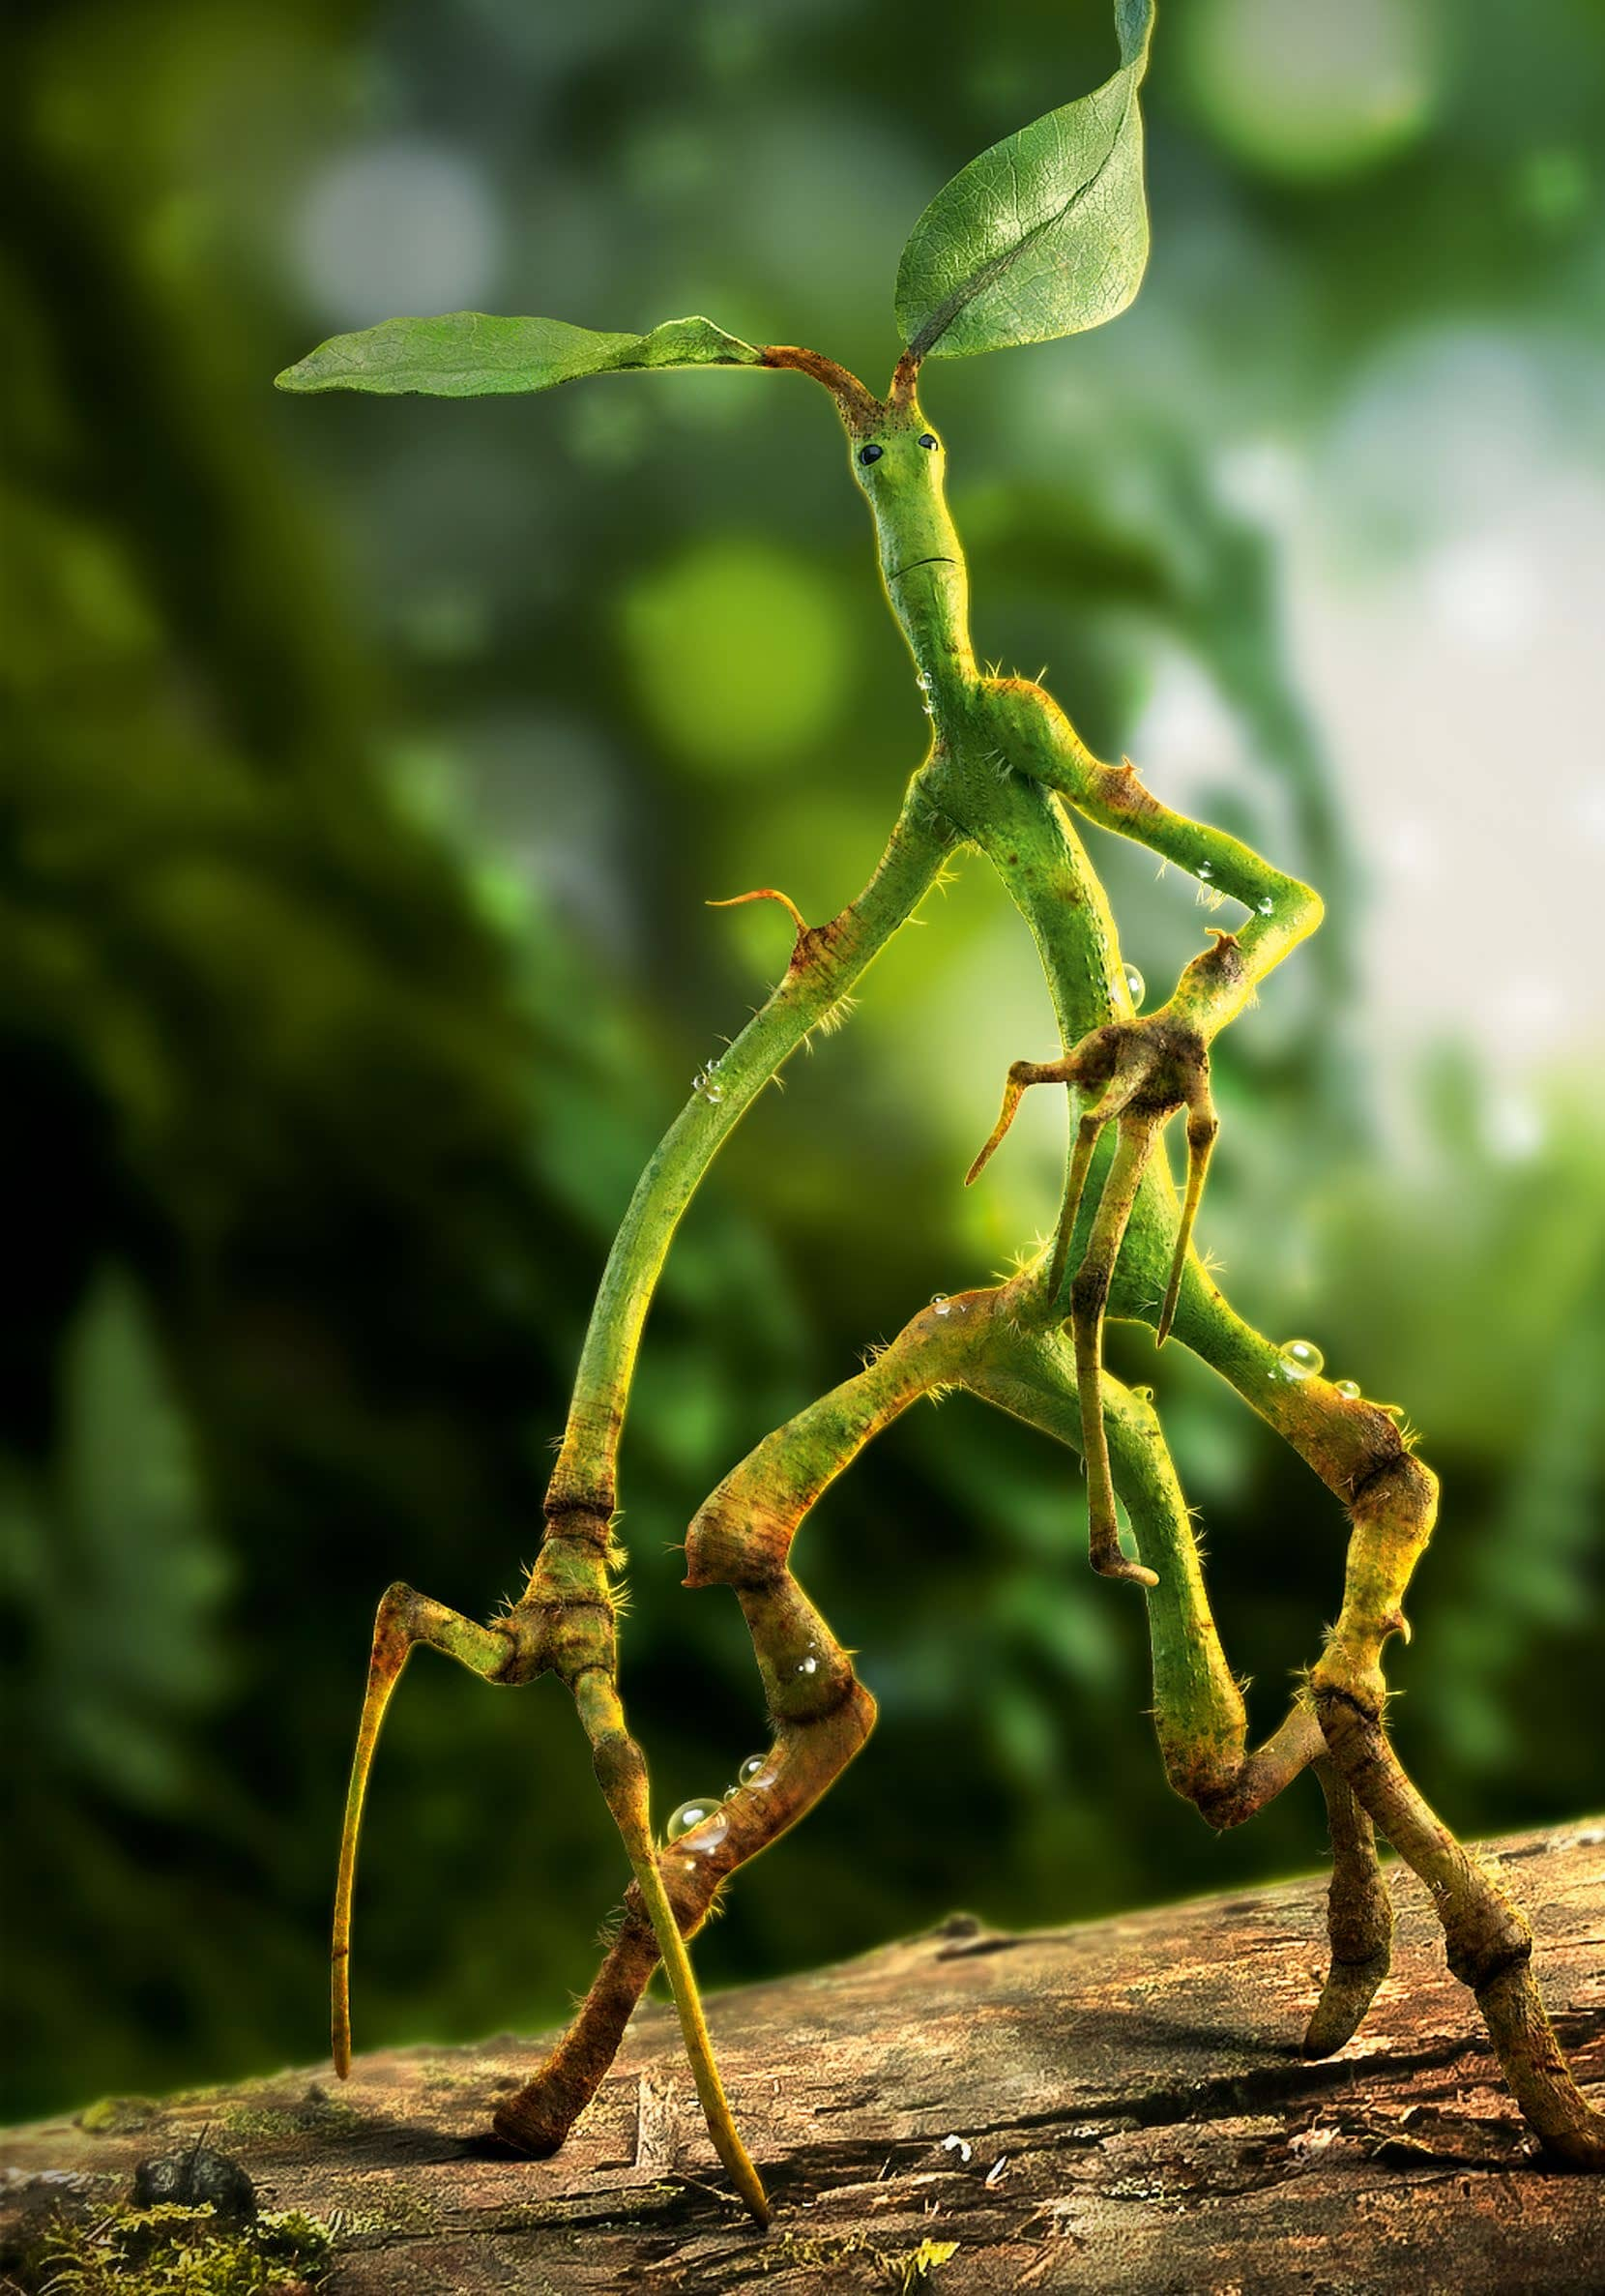 Create Your Own Pickett, The Bowtruckle